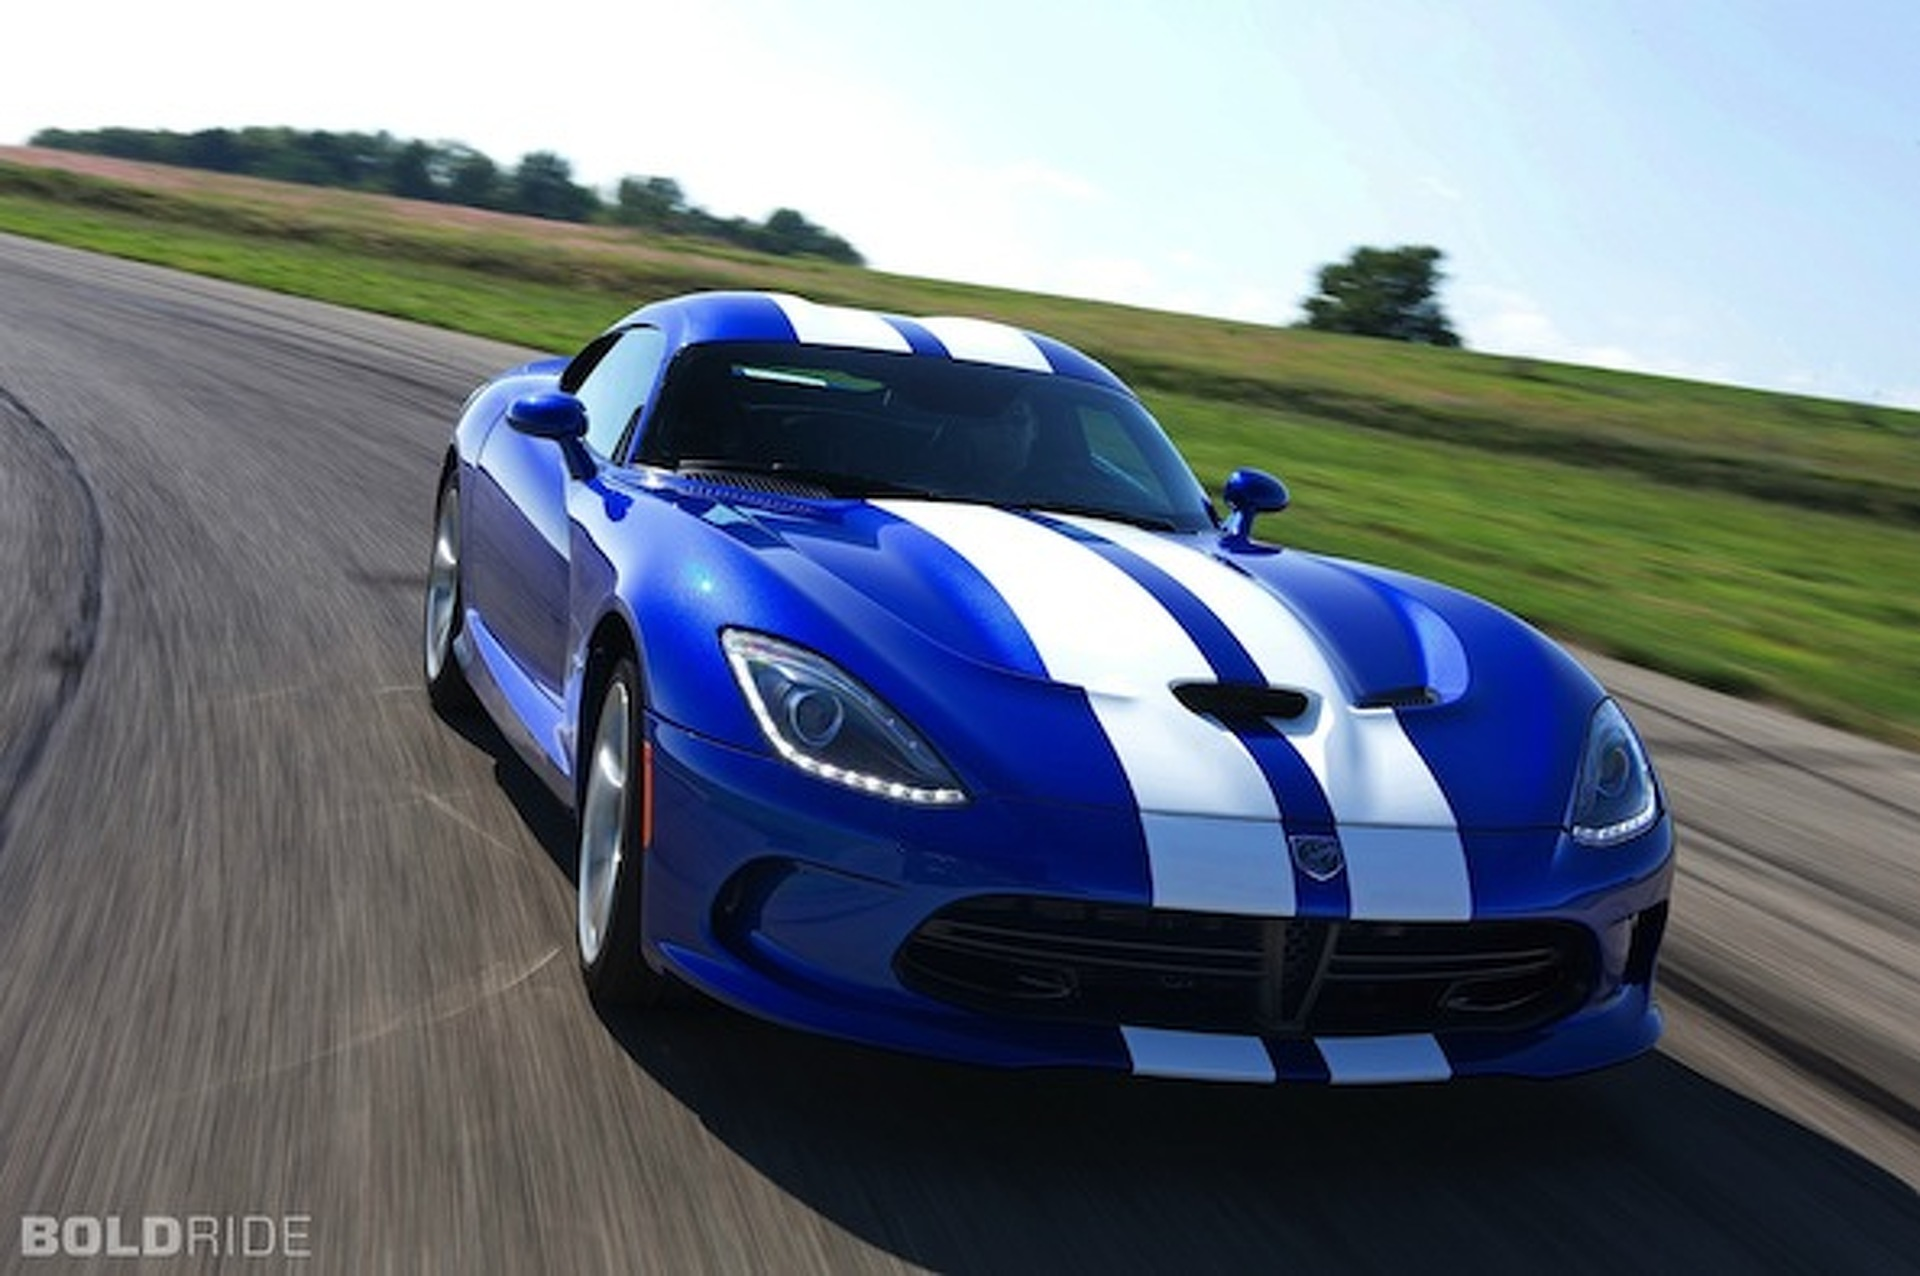 SRT Viper Heading to Europe, Sort Of